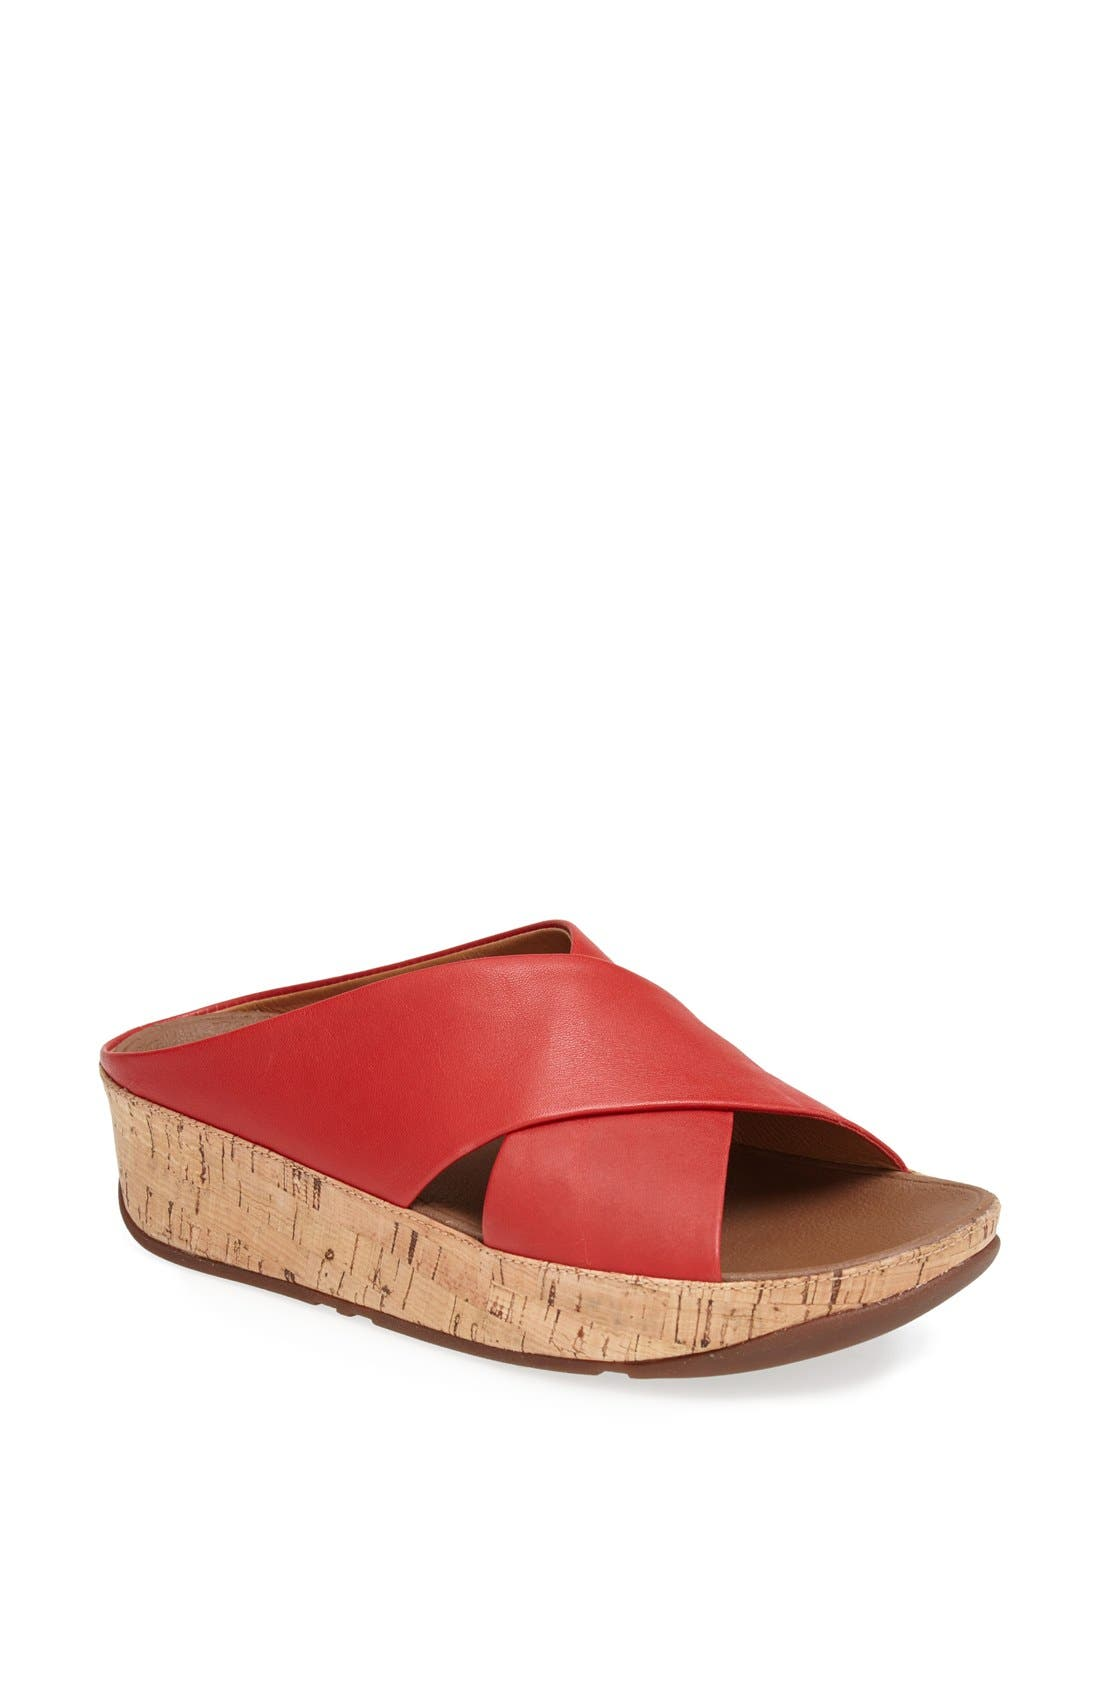 Main Image - FitFlop 'Kys™' Leather Sandal